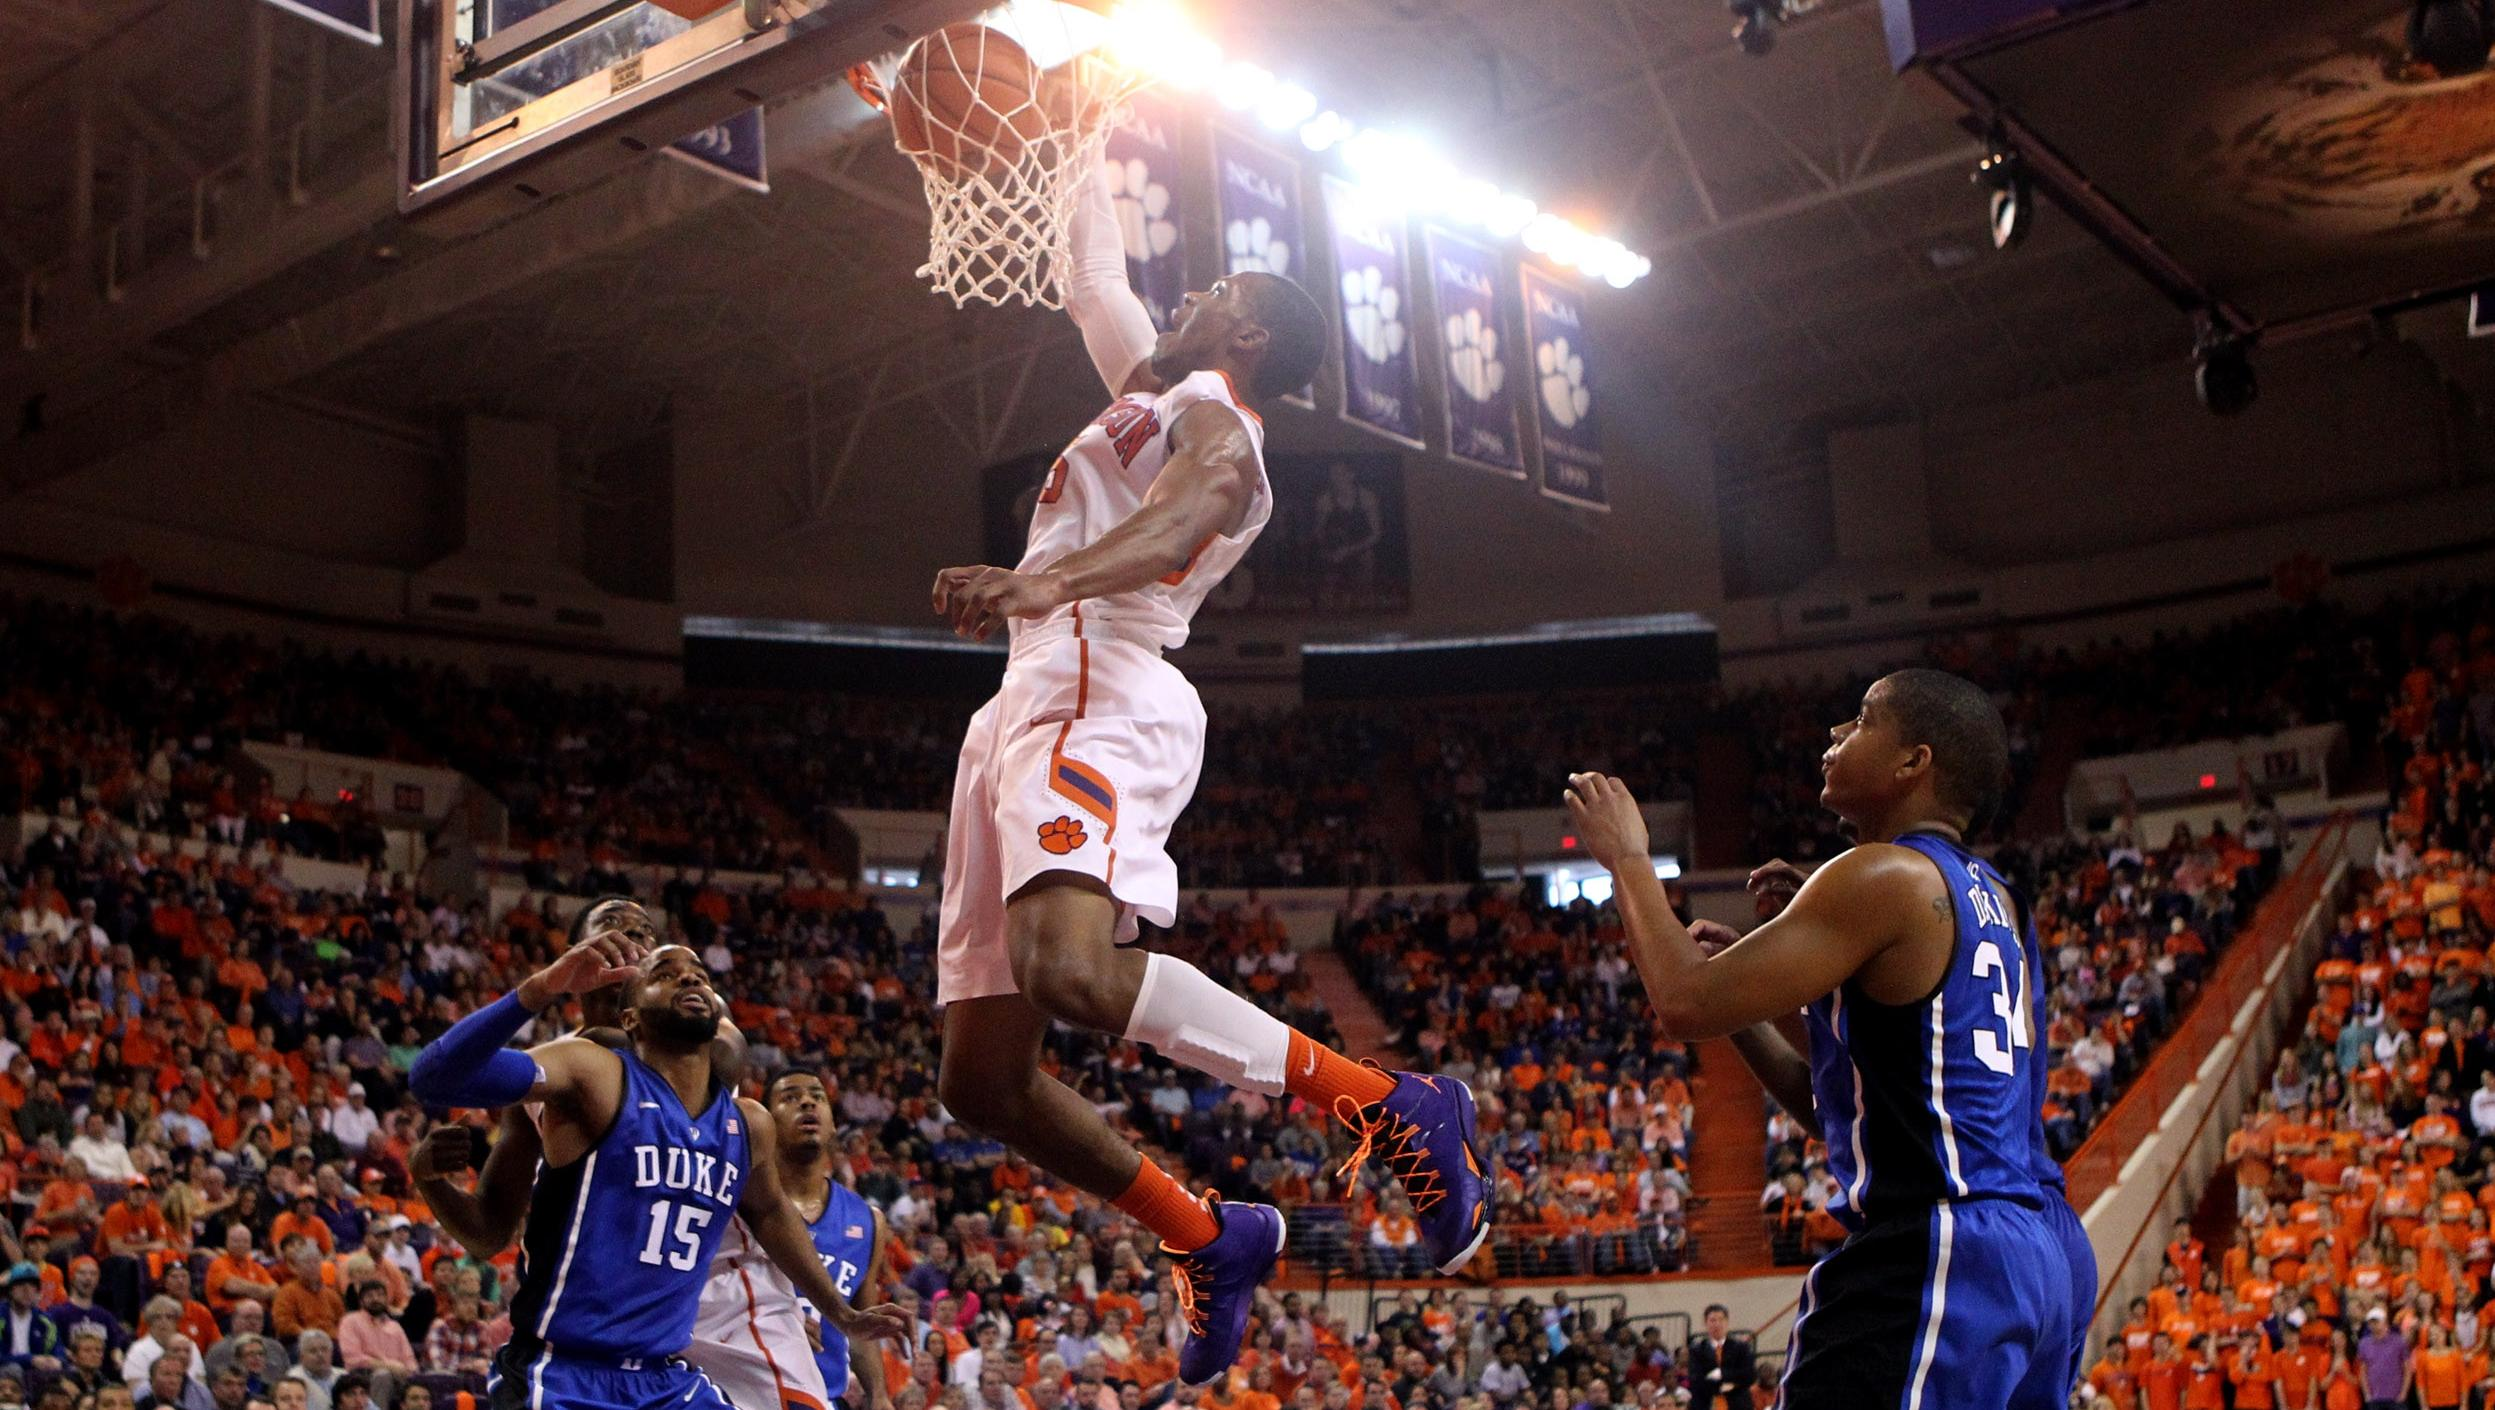 EXCLUSIVE: Blossomgame Makes Most of Matchup with Duke Superstar